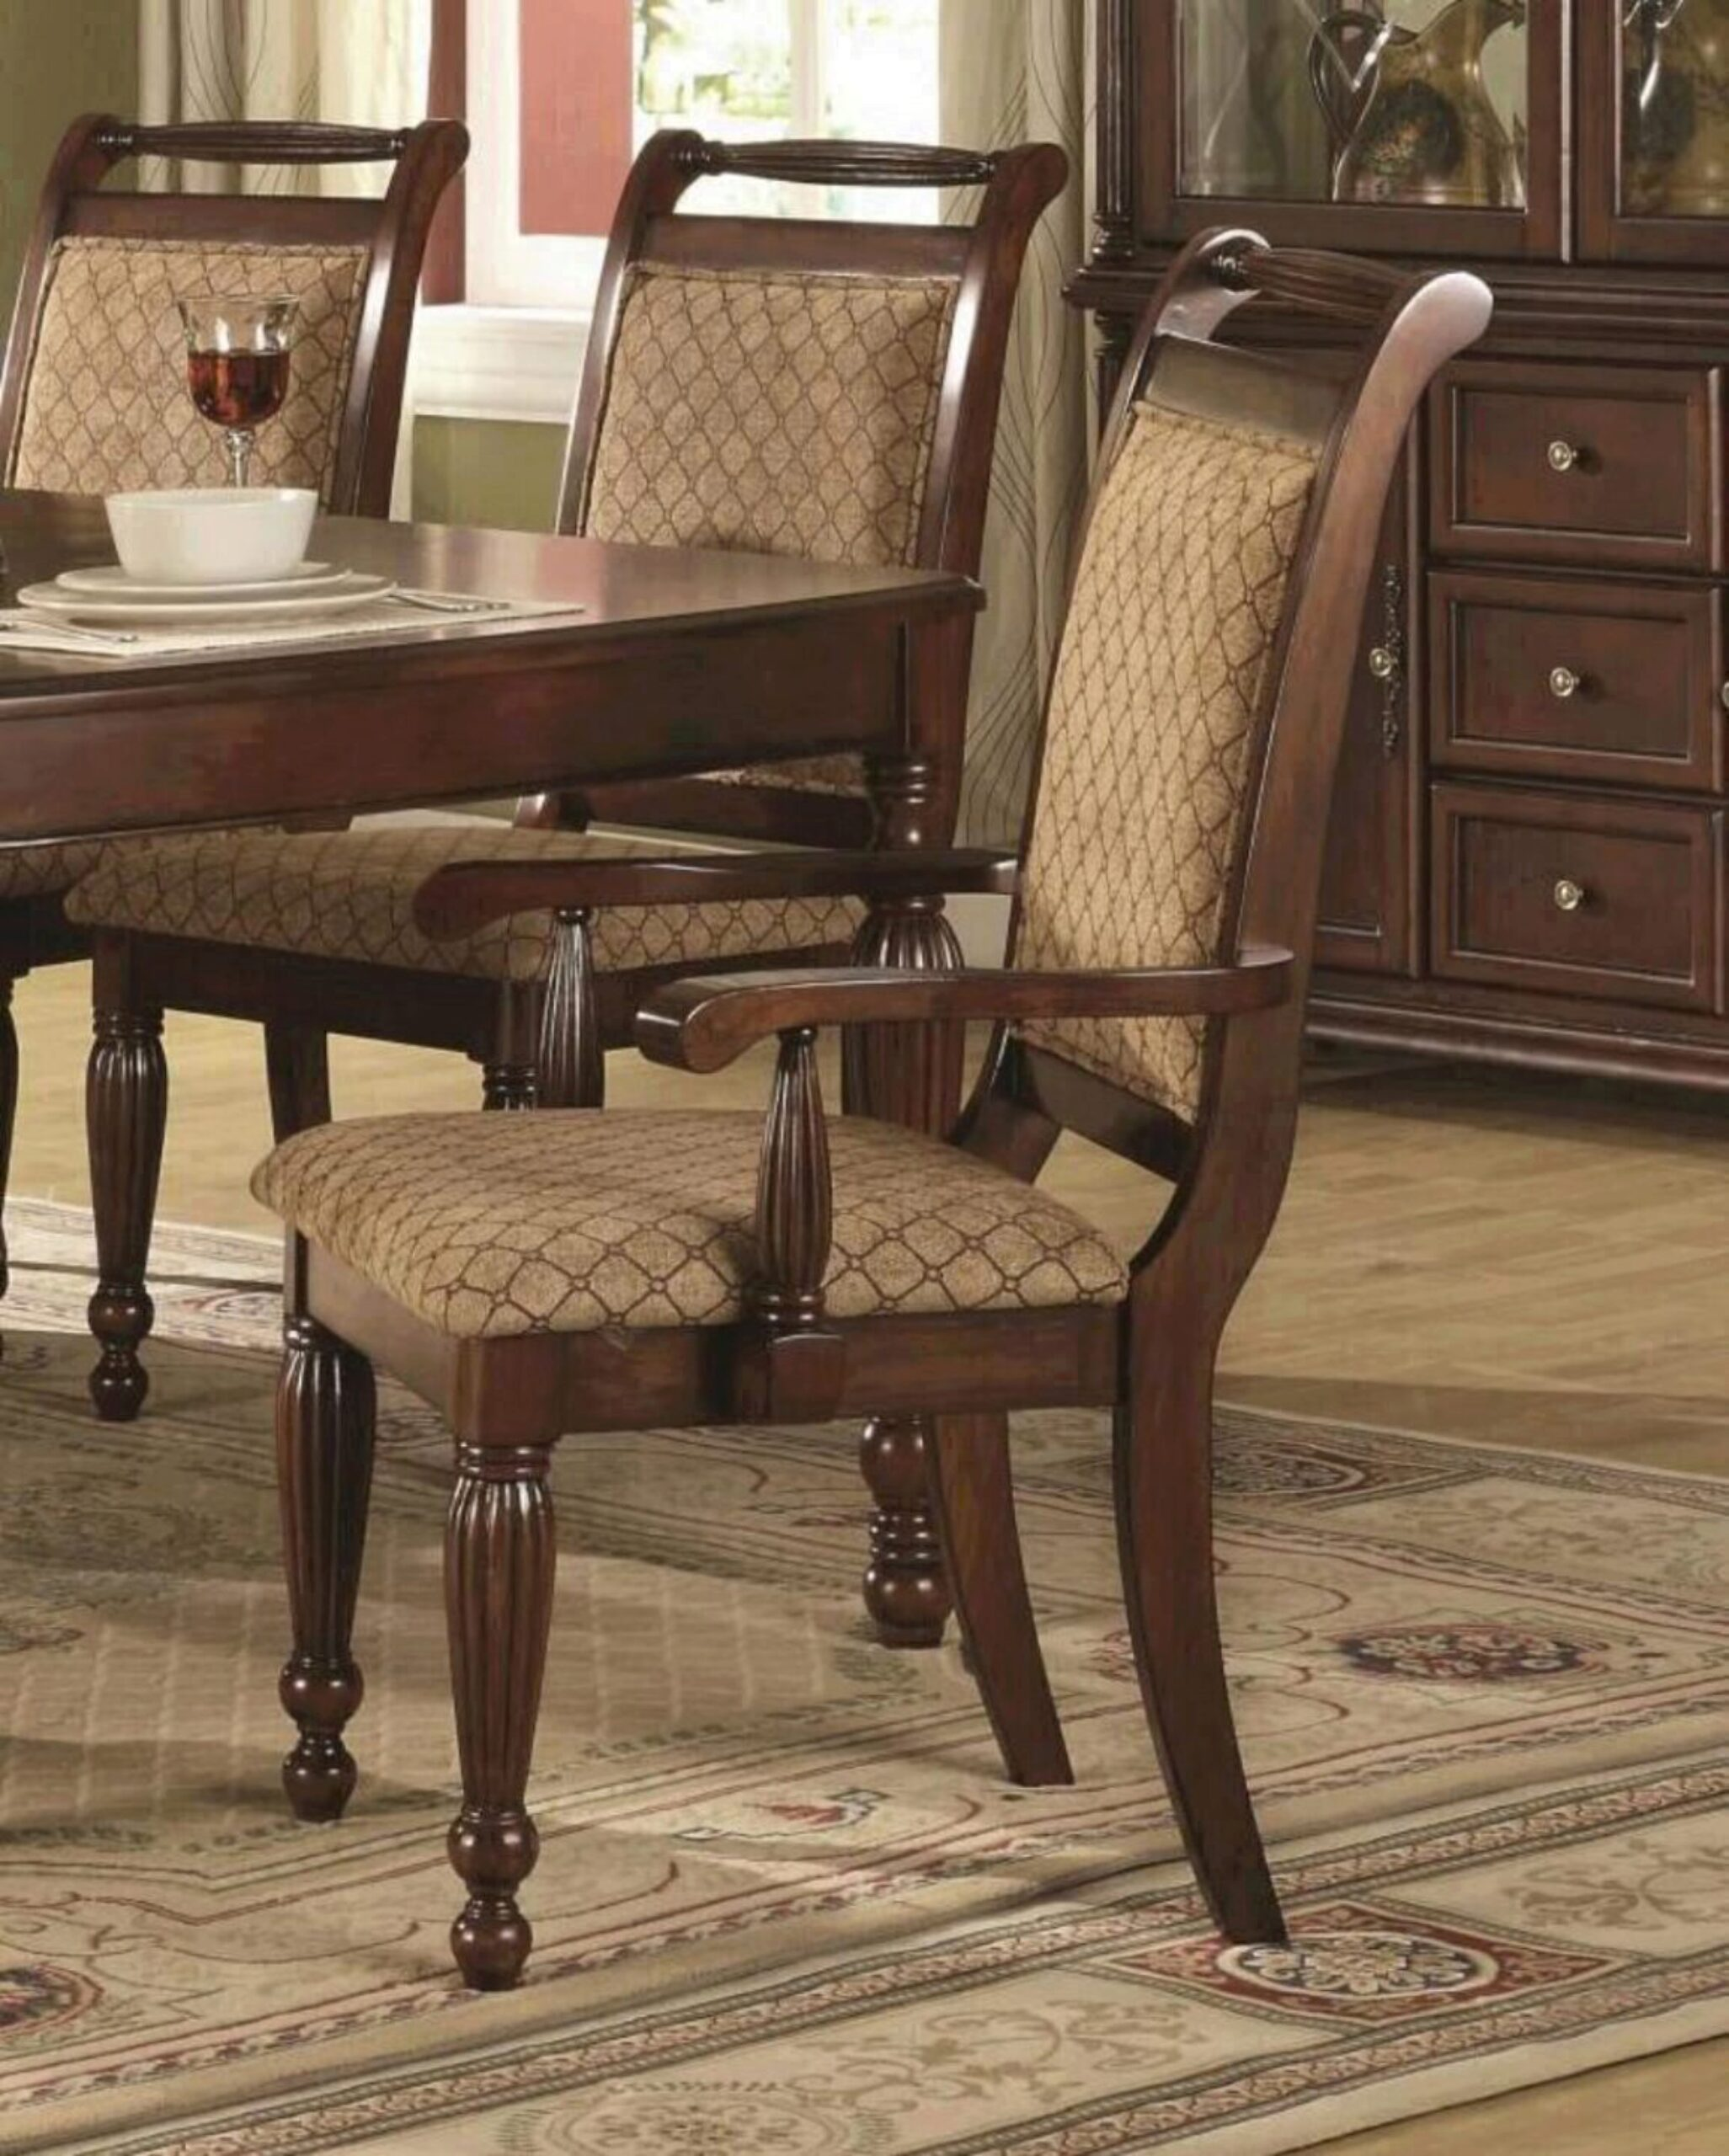 Myco Furniture Wilshire Brown Finish, Wilshire Dining Room Furniture